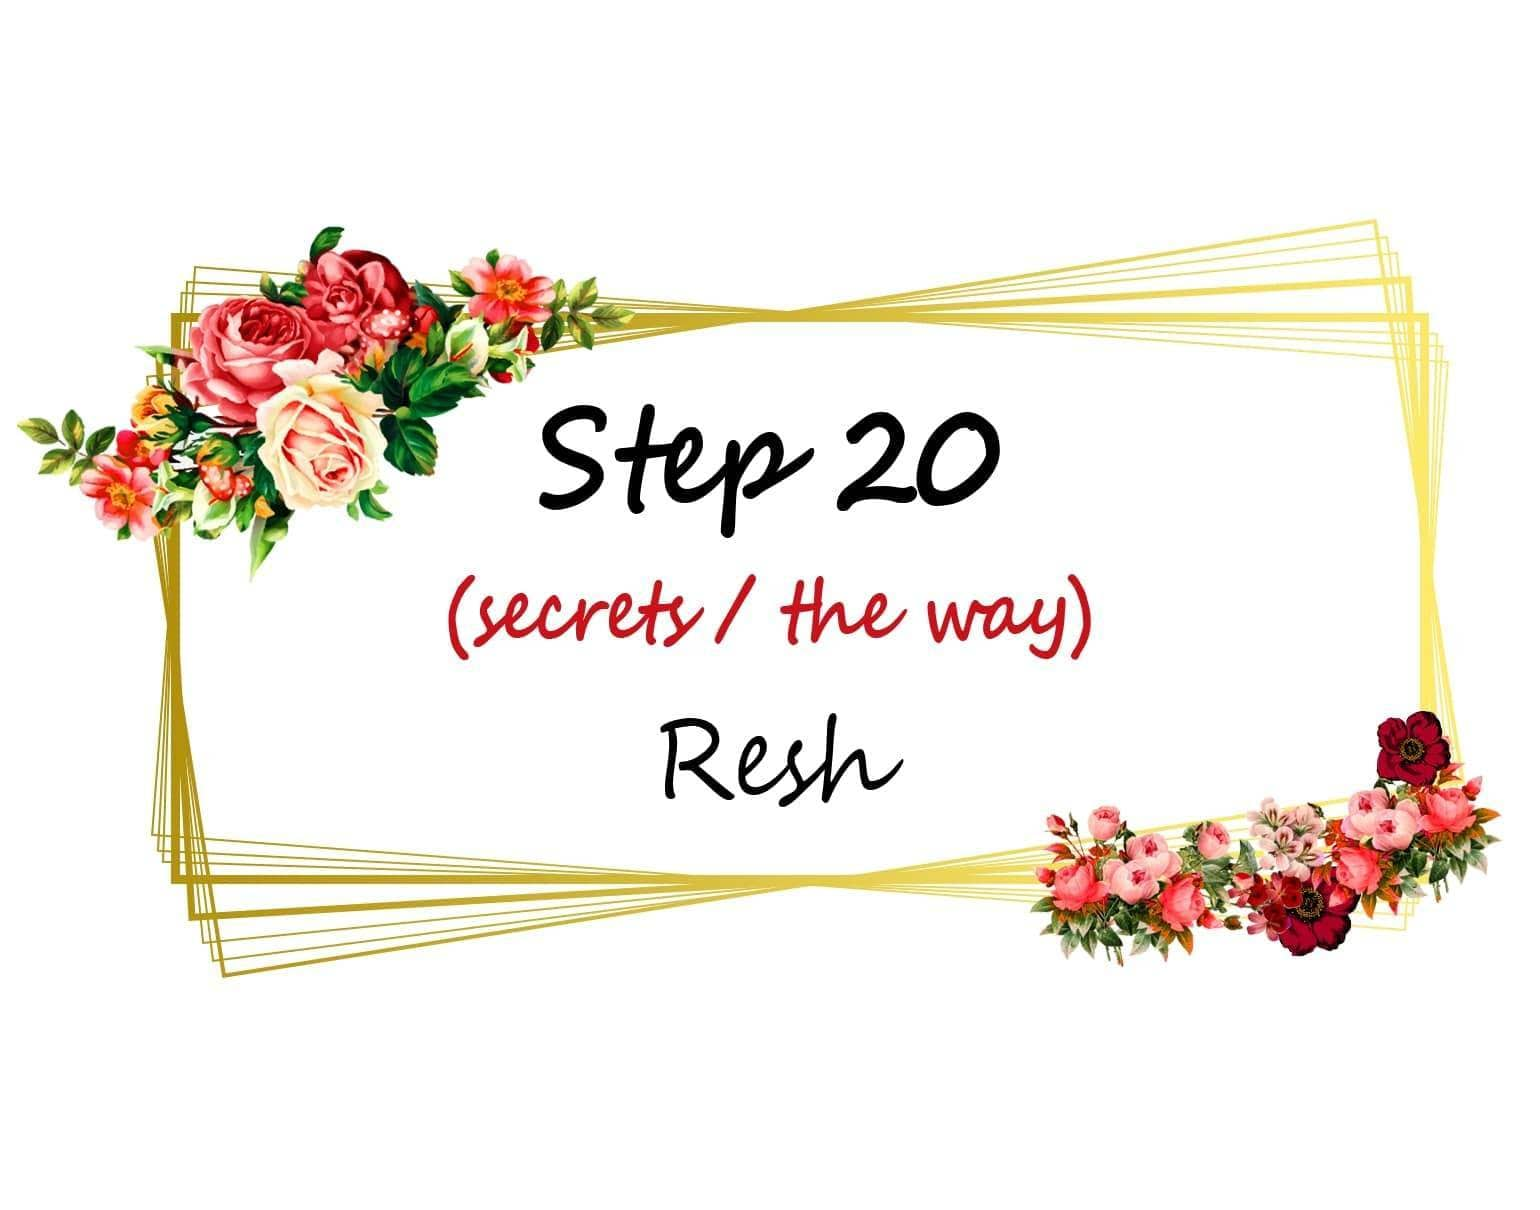 Step Twenty - Resh - ''...this is your new beginning,''